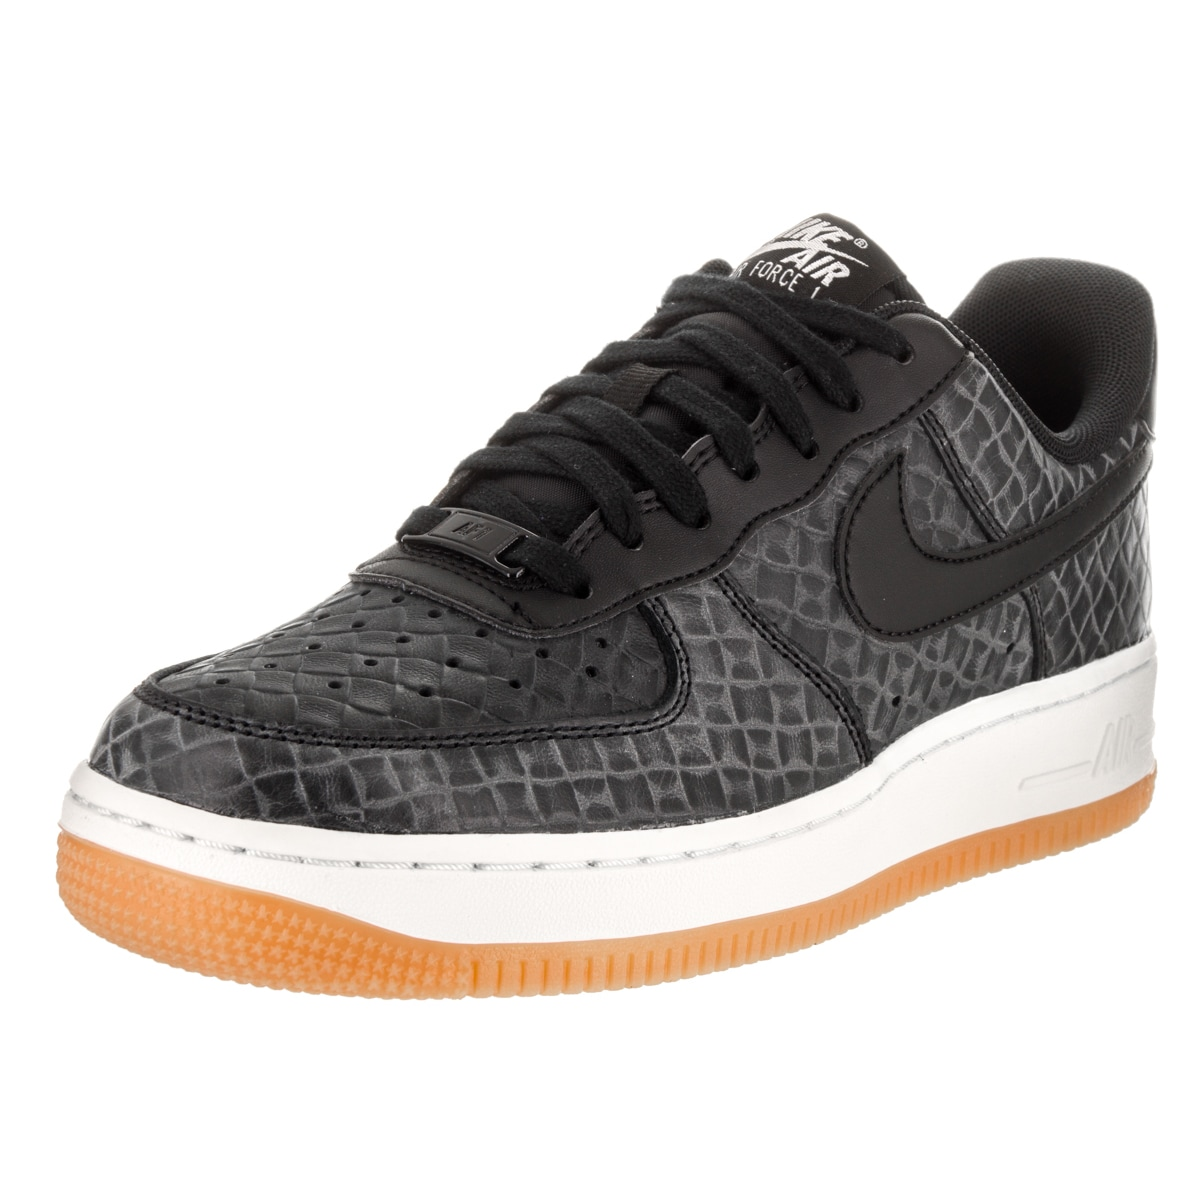 16c72ff54e Nike Women s Air Force 1  07 Prm Black Synthetic Leather Basketball Shoes